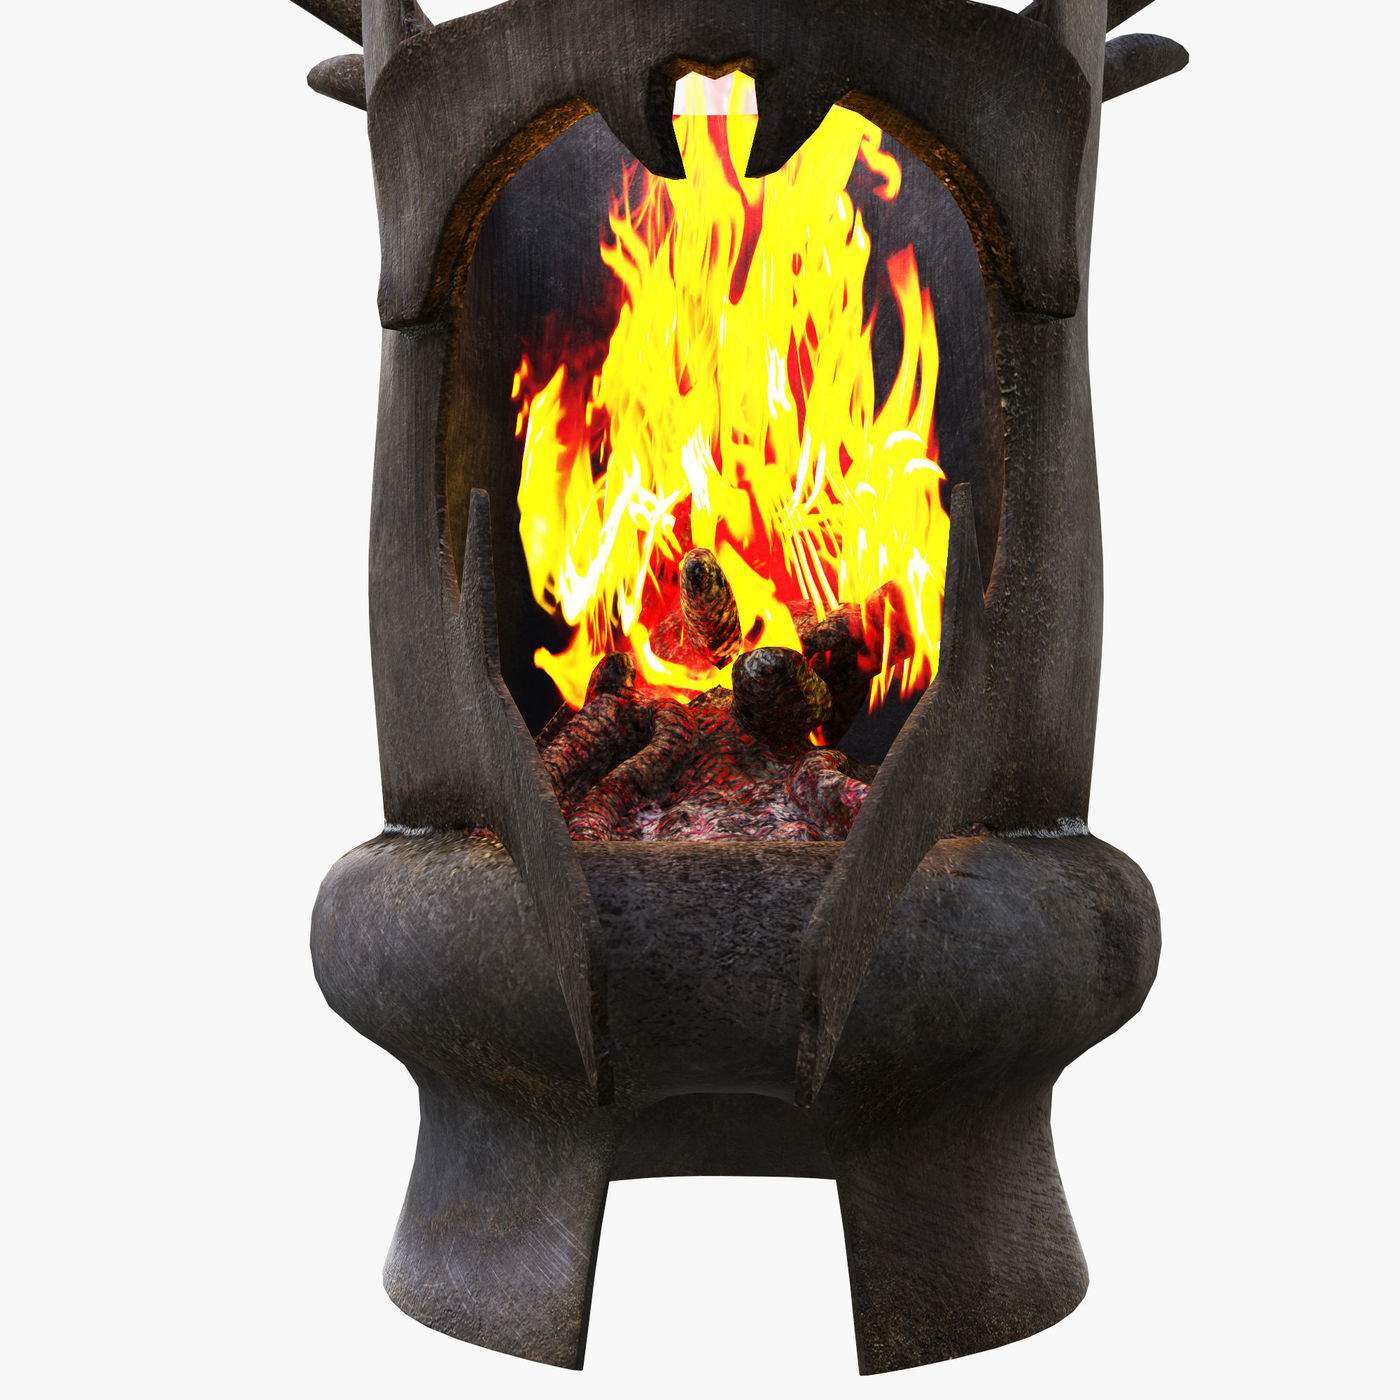 Dark knight head fireplace concept